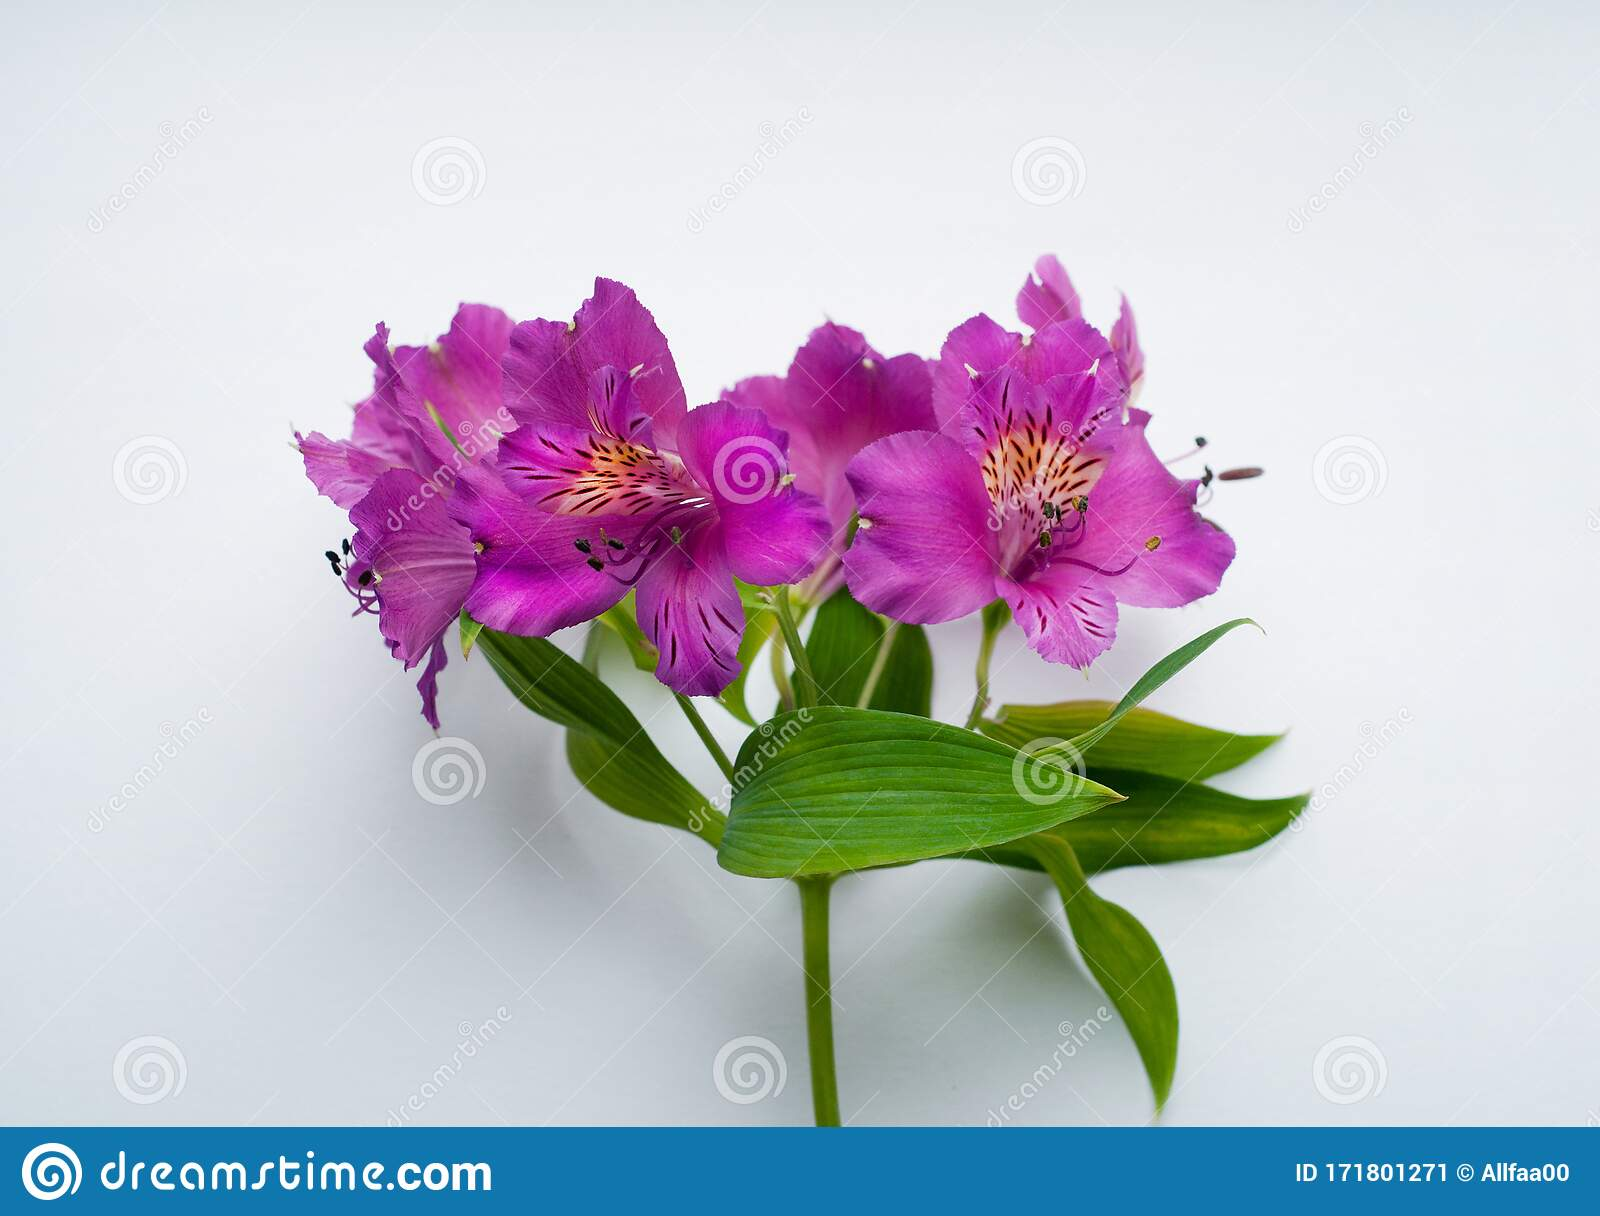 185 Alstroemeria White Purple Peruvian Lily Photos Free Royalty Free Stock Photos From Dreamstime